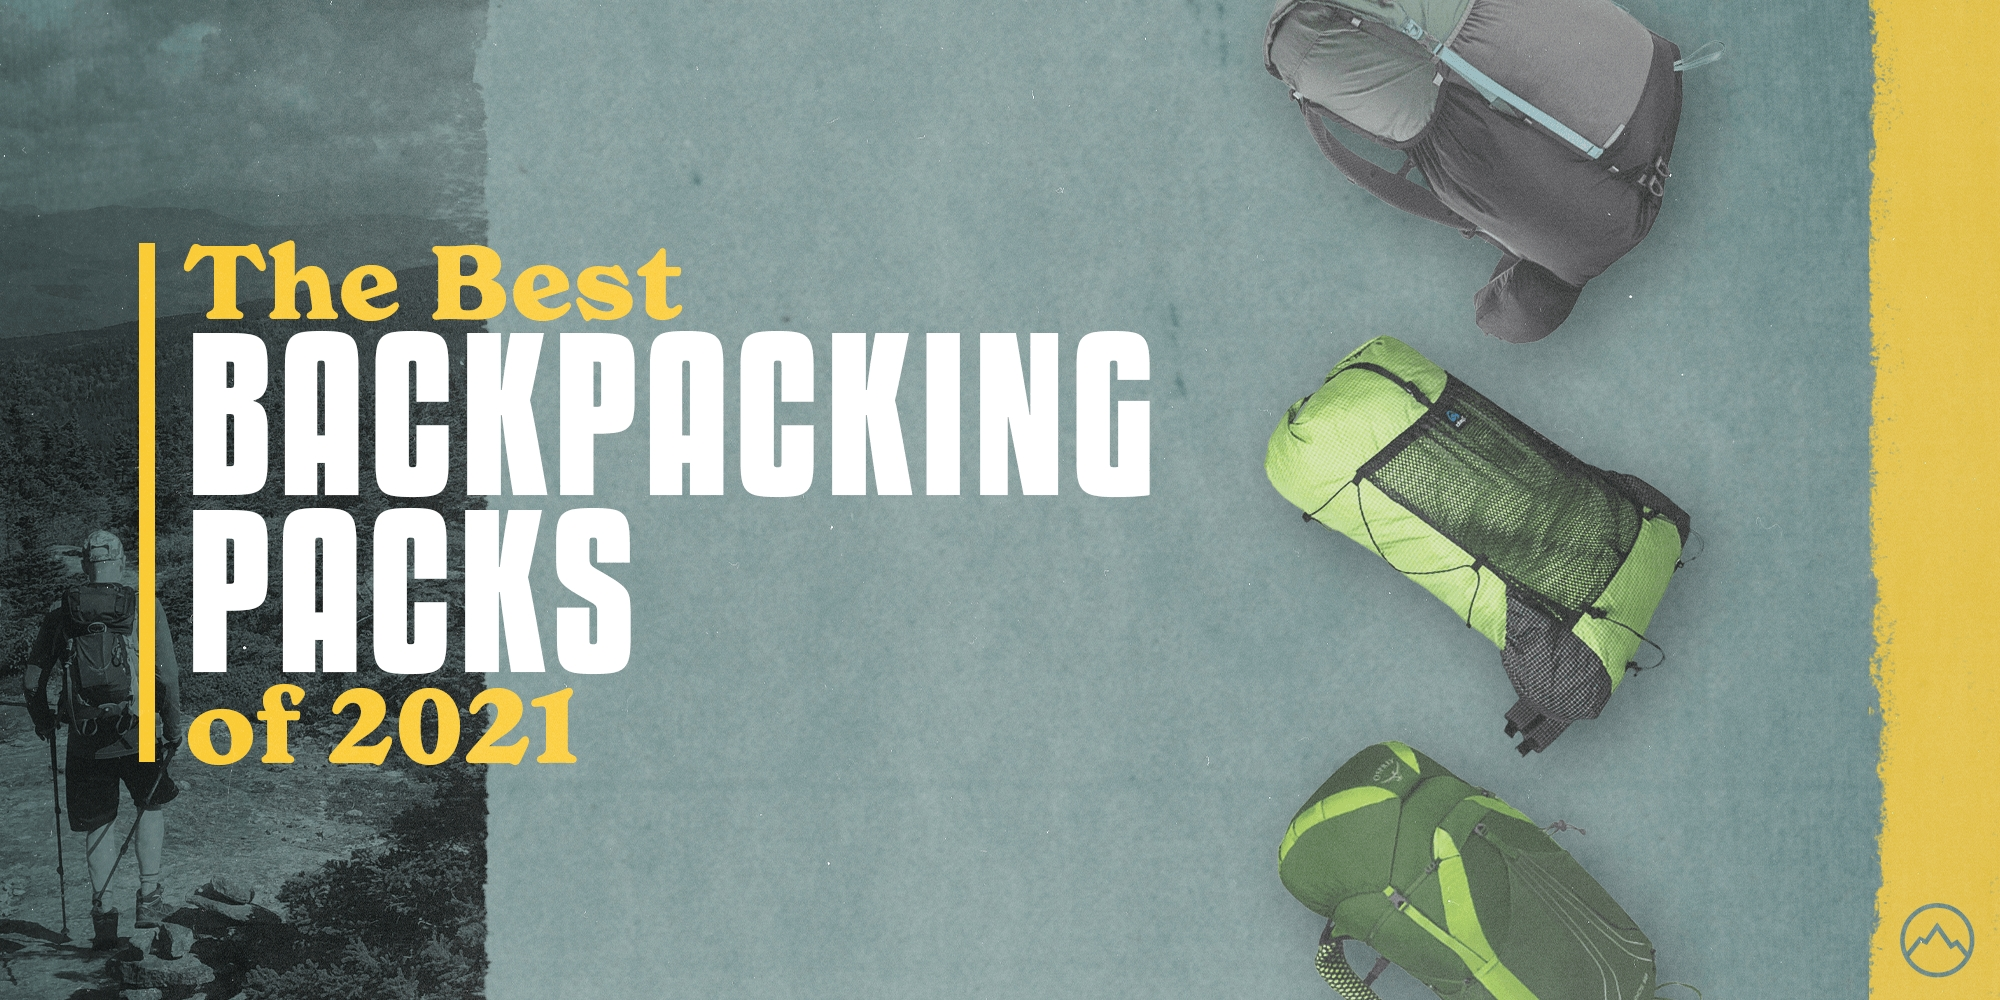 The Best Backpacking Packs of 2021